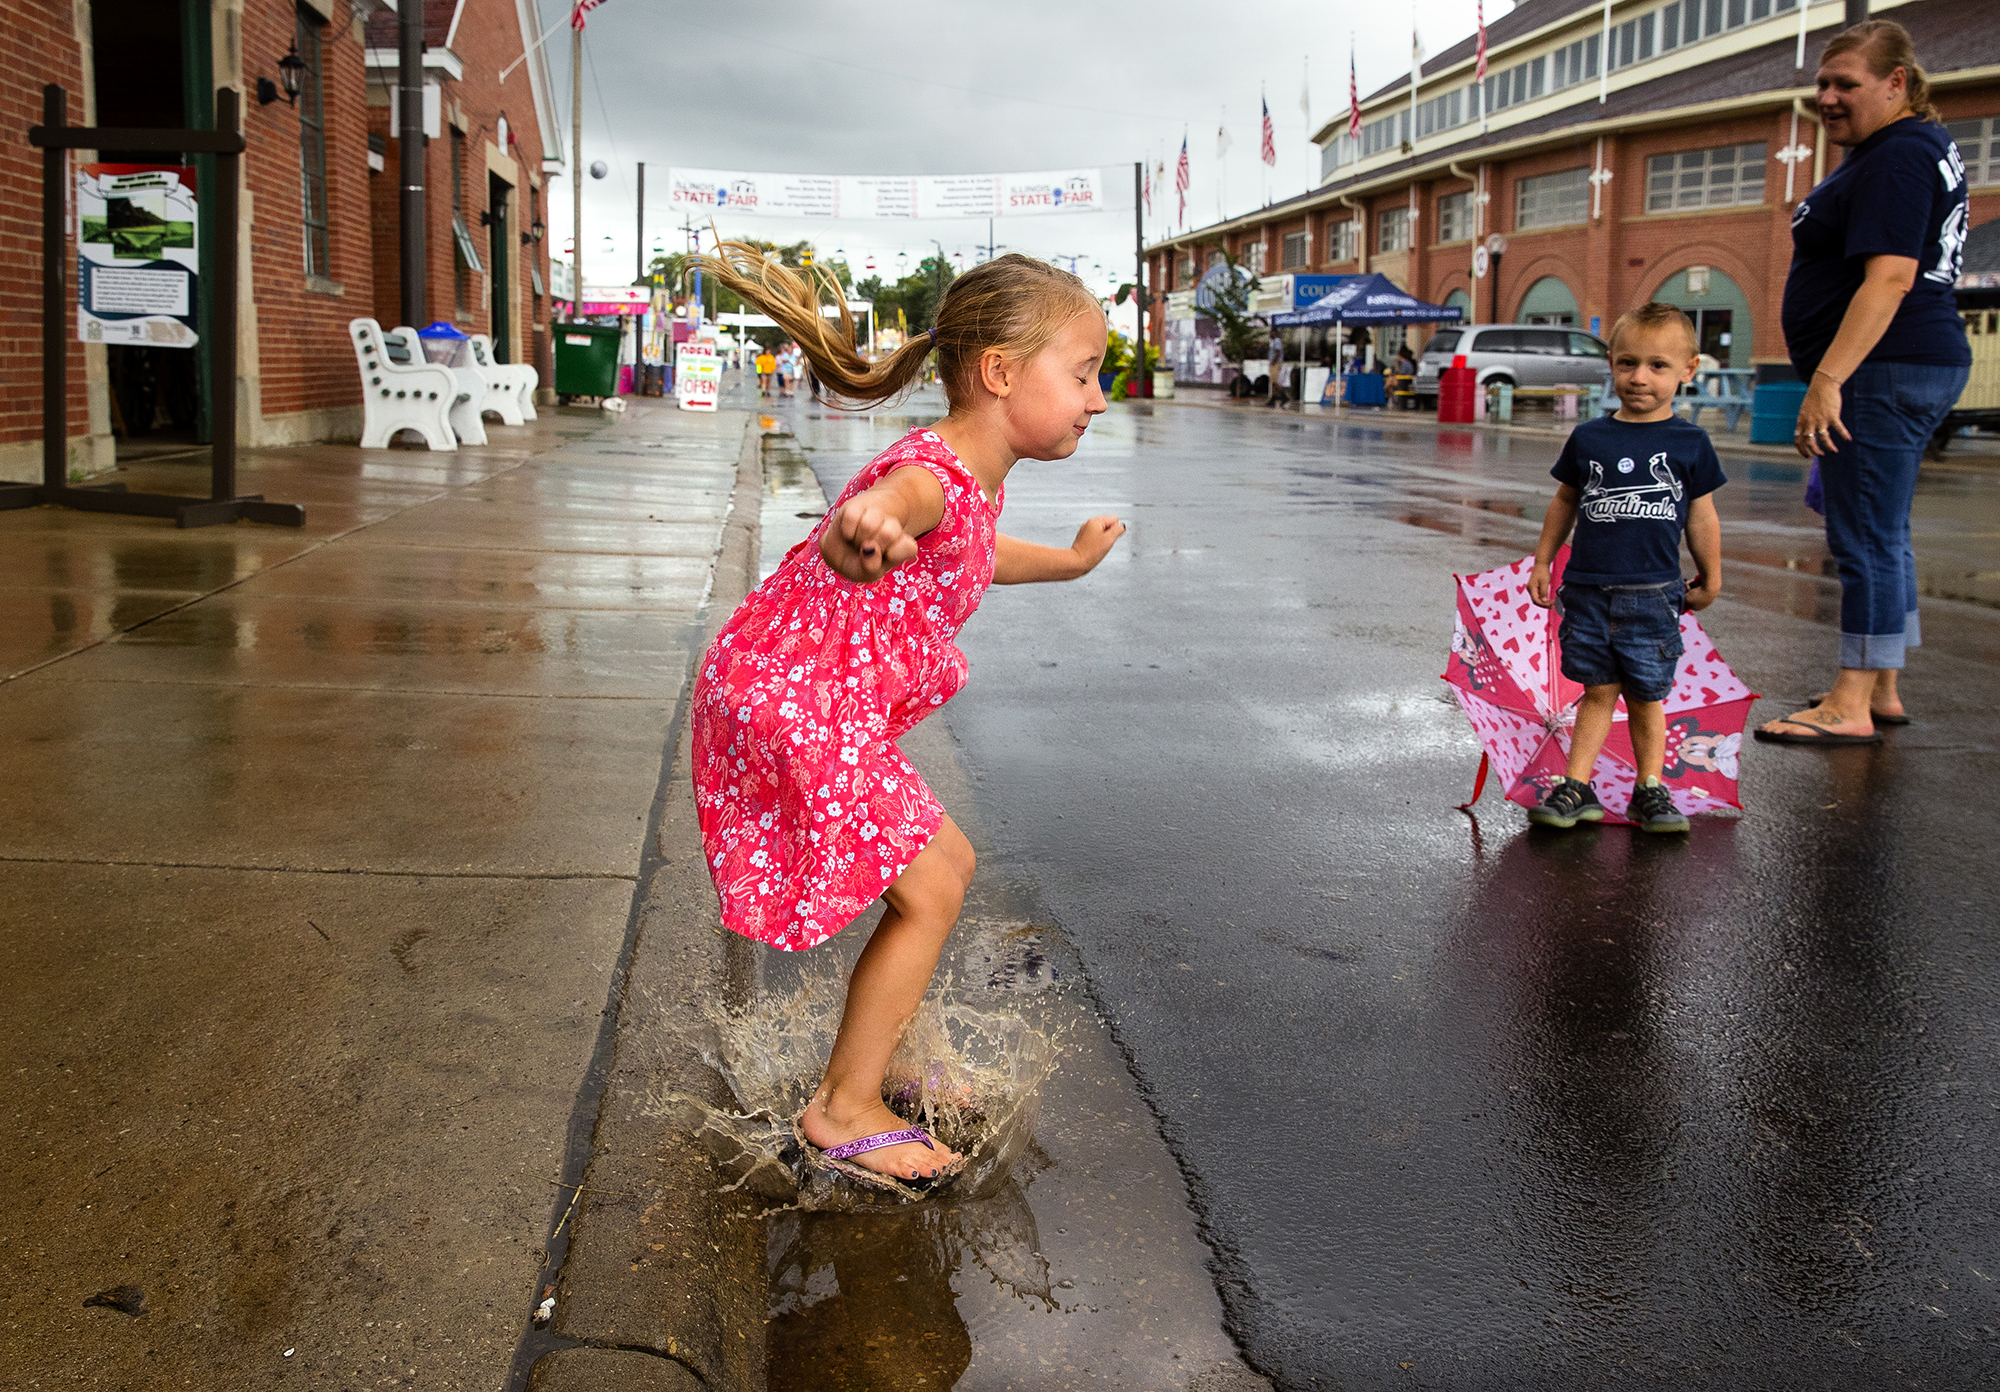 Jeslyn Taylor leaps into a puddle as a light rain falls at the Illinois State Fair Wednesay, Aug. 15, 2018. Taylor, five-years-old, was visiting with her brother Asher and mother Amanda. [Ted Schurter/The State Journal-Register]